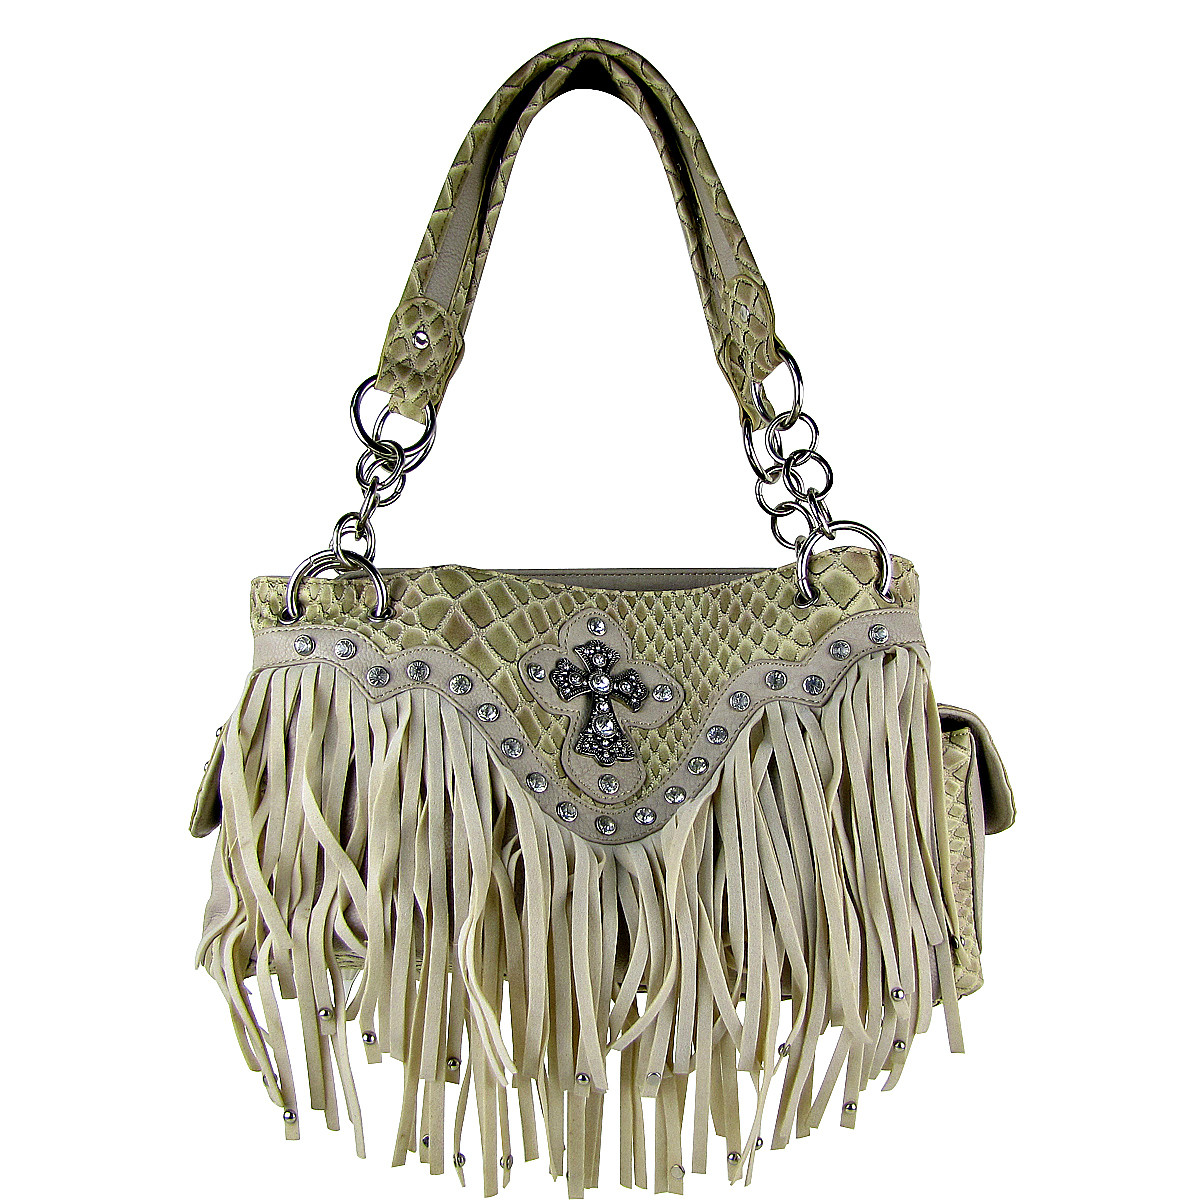 BEIGE RHINESTONE CROSS FRINGE SHOULDER HANDBAG BEIGE RHINESTONE CROSS FRINGE SHOULDER HANDBAG HB1-HL12164BEI